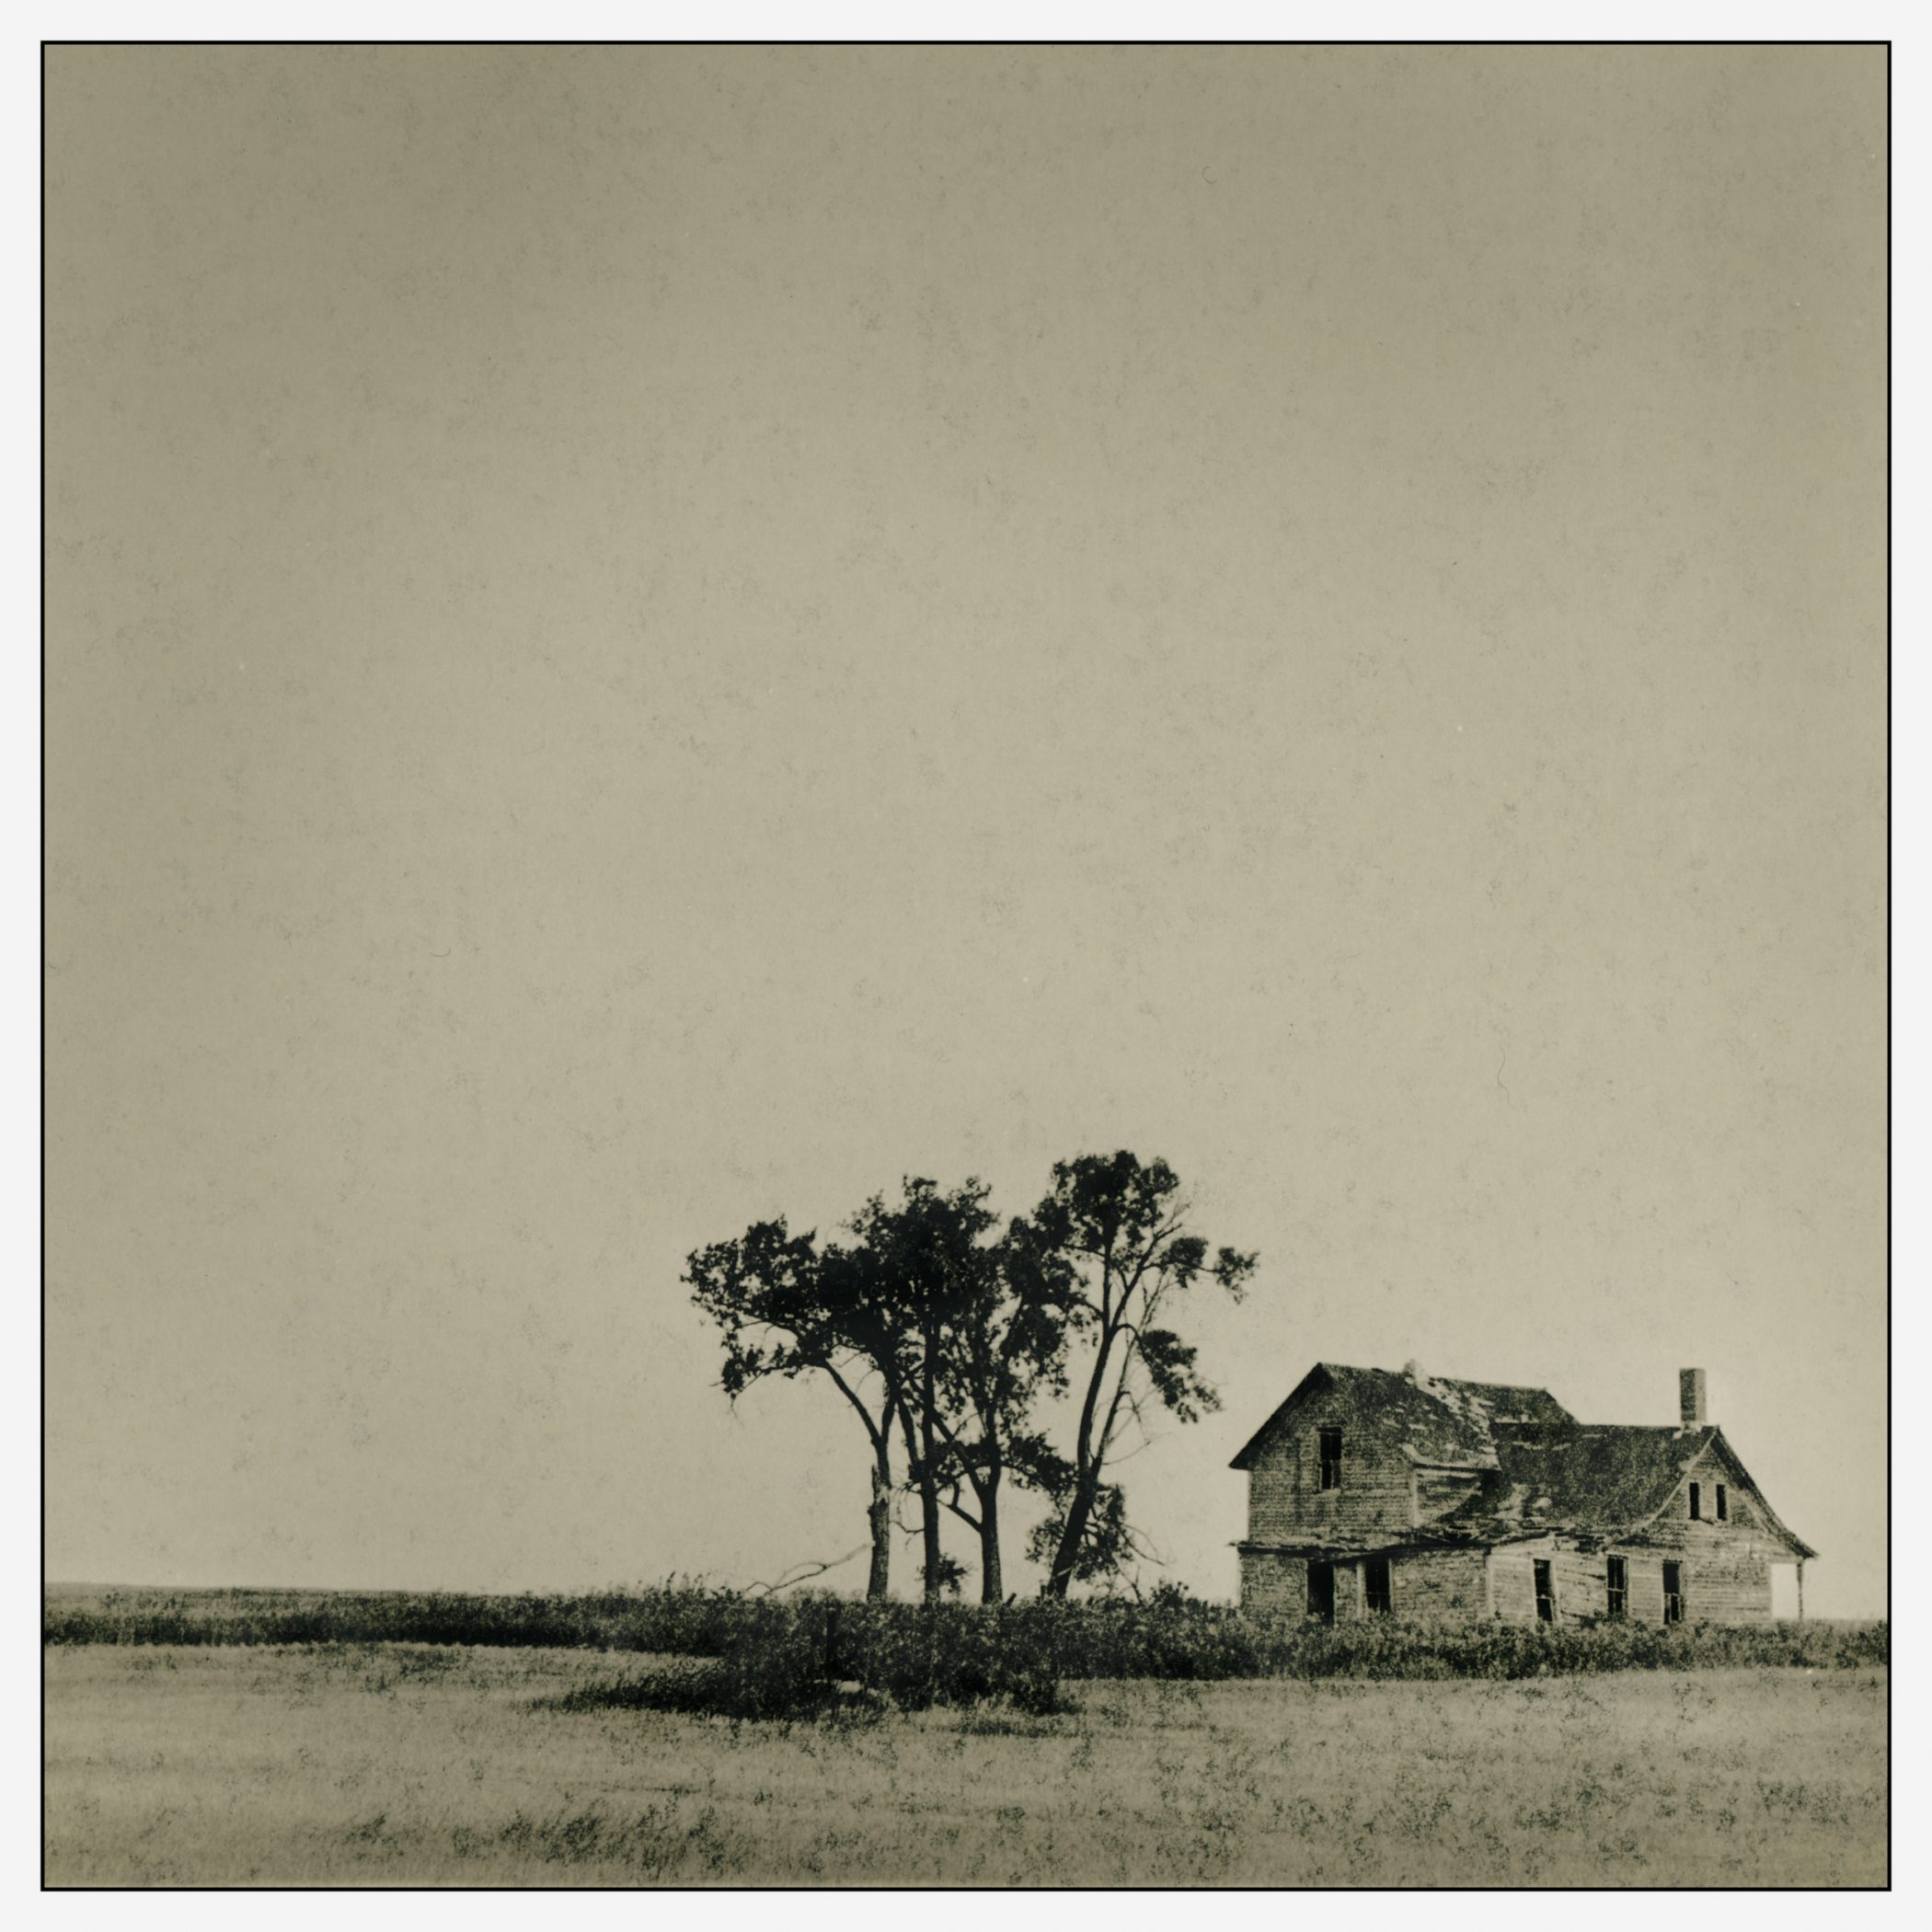 lone-farm-and-tree-lith-adox-mcc-2100x21